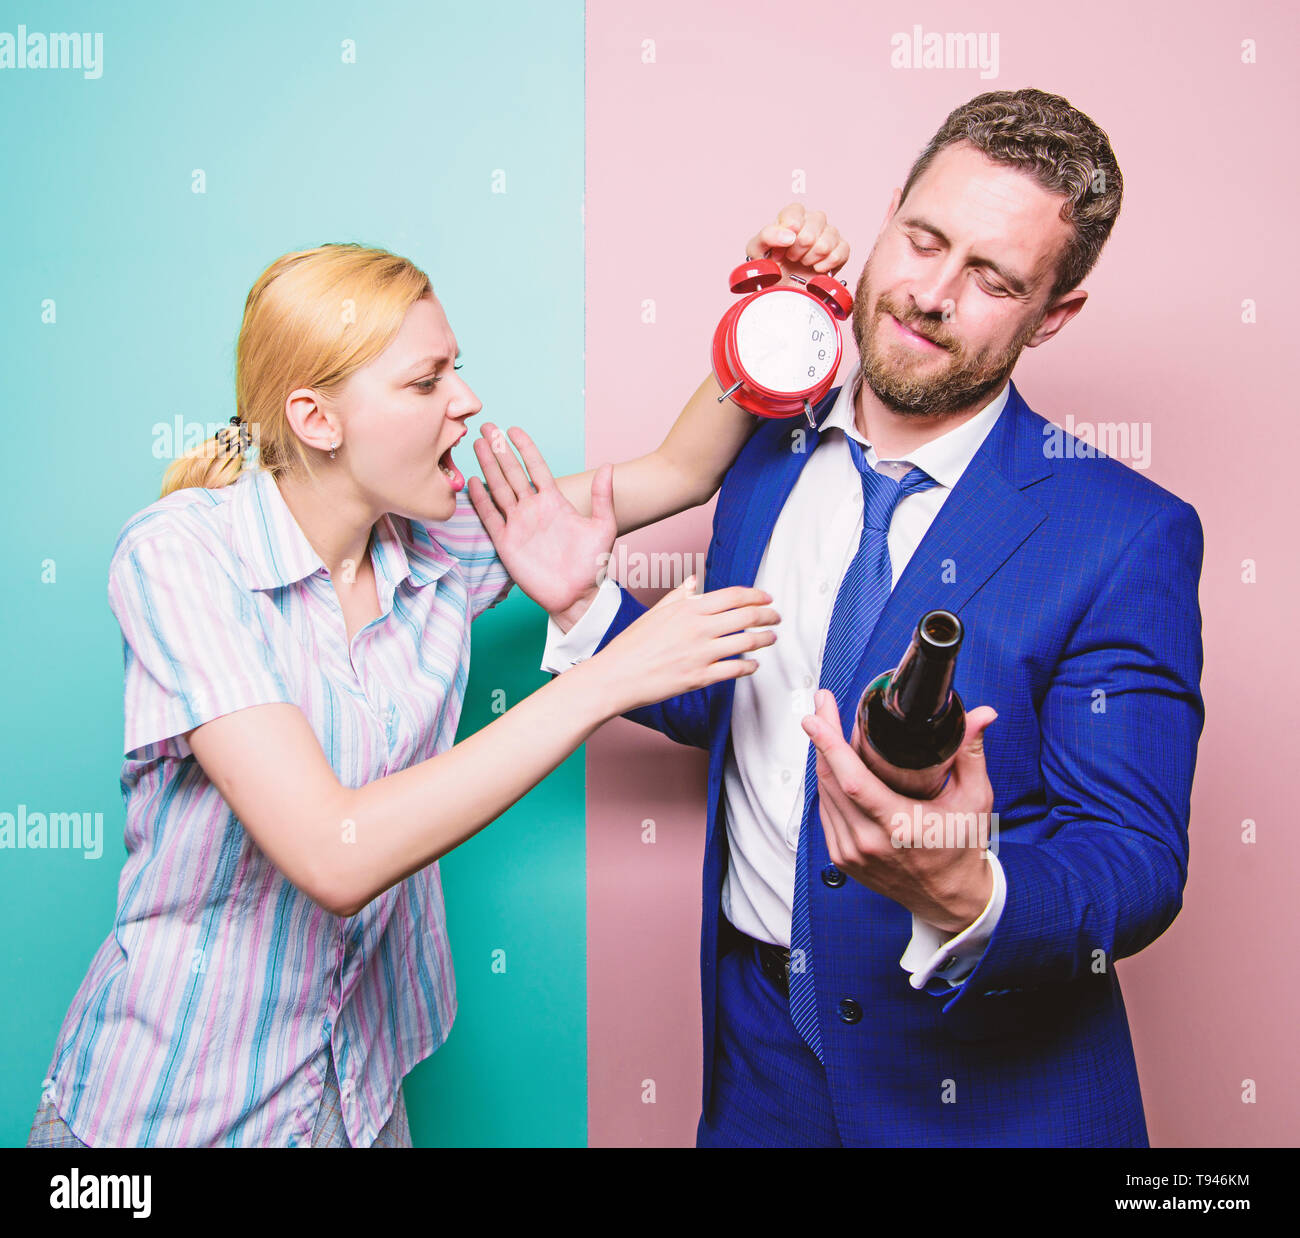 Caught for coming home late. Man suffering from alcoholism. Angry wife meeting drunk husband late at home. Businessman with alcohol bottle and woman with clock. Addictive alcoholism or alcohol abuse. - Stock Image